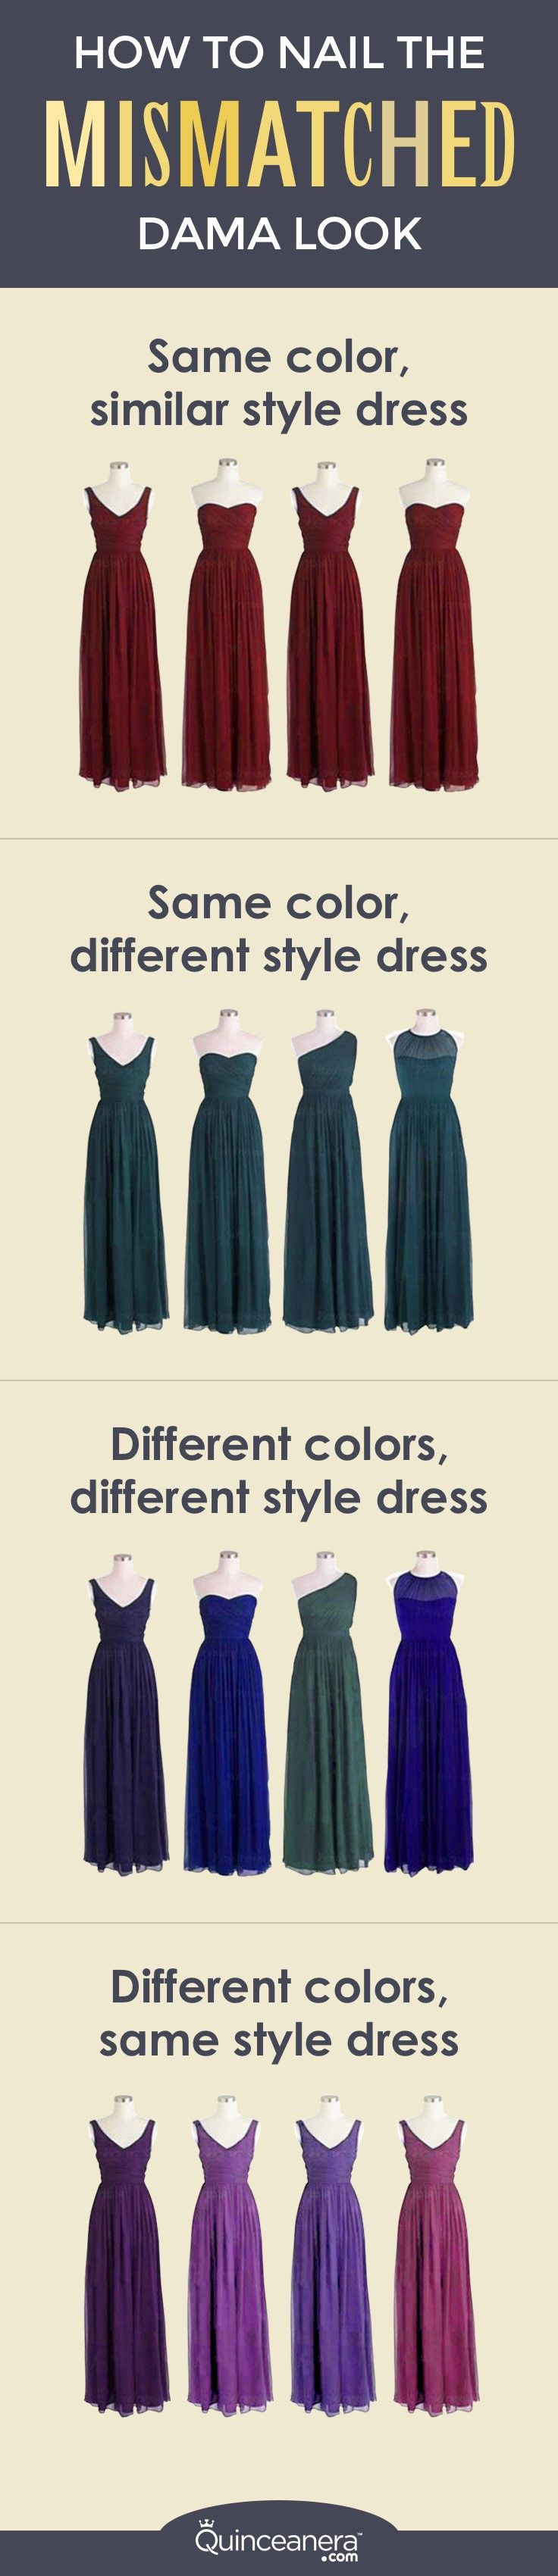 et's be real – we would hate buying an expensive dress that we don't feel beautiful in. That's why different body types, budgets, and personalities must be all taken into consideration to make each member of your quince court happy. - See more at: http://www.quinceanera.com/dresses/mismatched-dama-dresses/#sthash.2UHsbxU3.dpuf